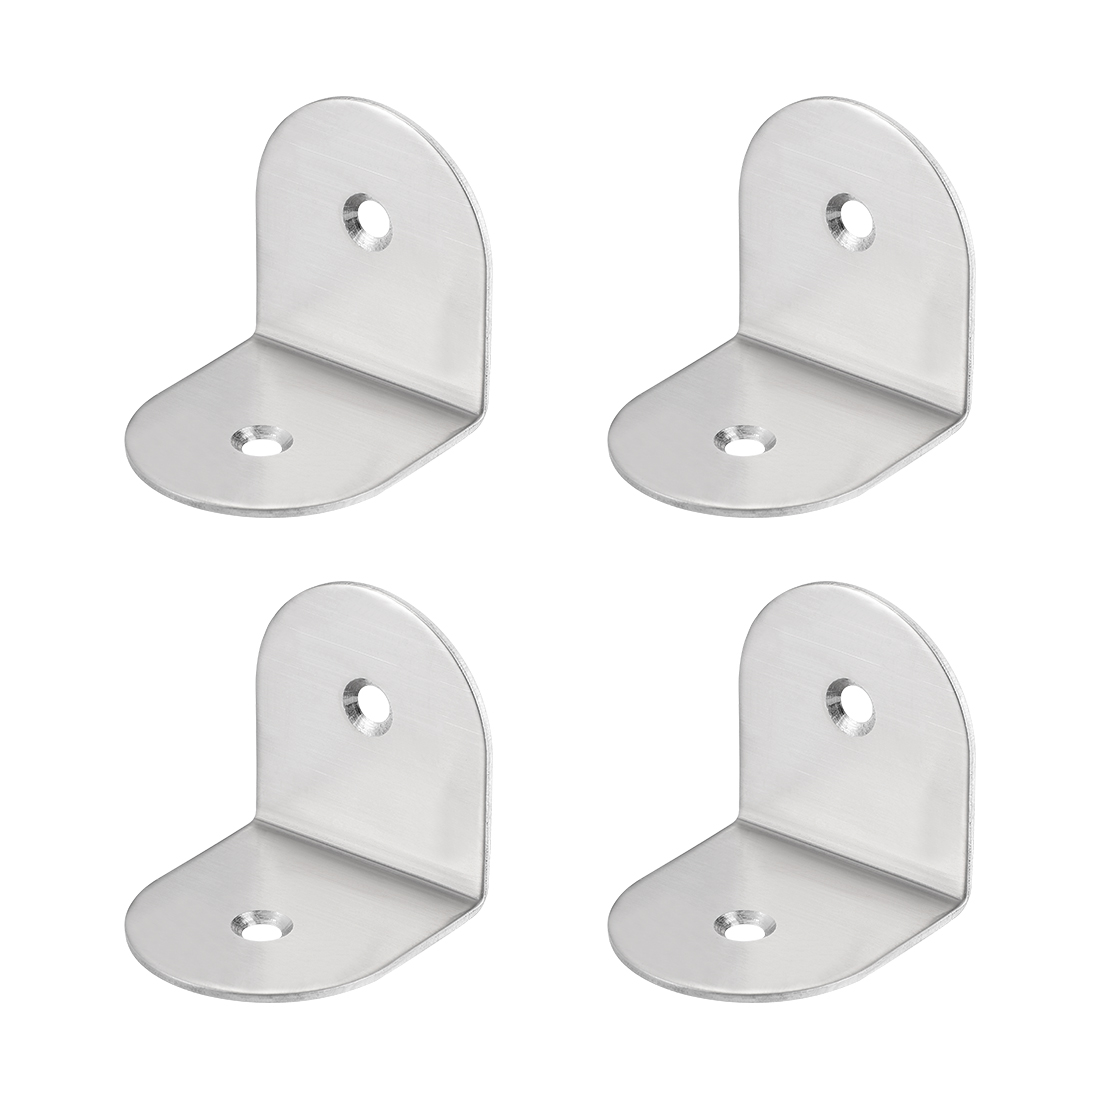 Corner Brace, 40mm x 41mm x 1.5mm Stainless Steel Right Angle Bracket, 4 Pcs